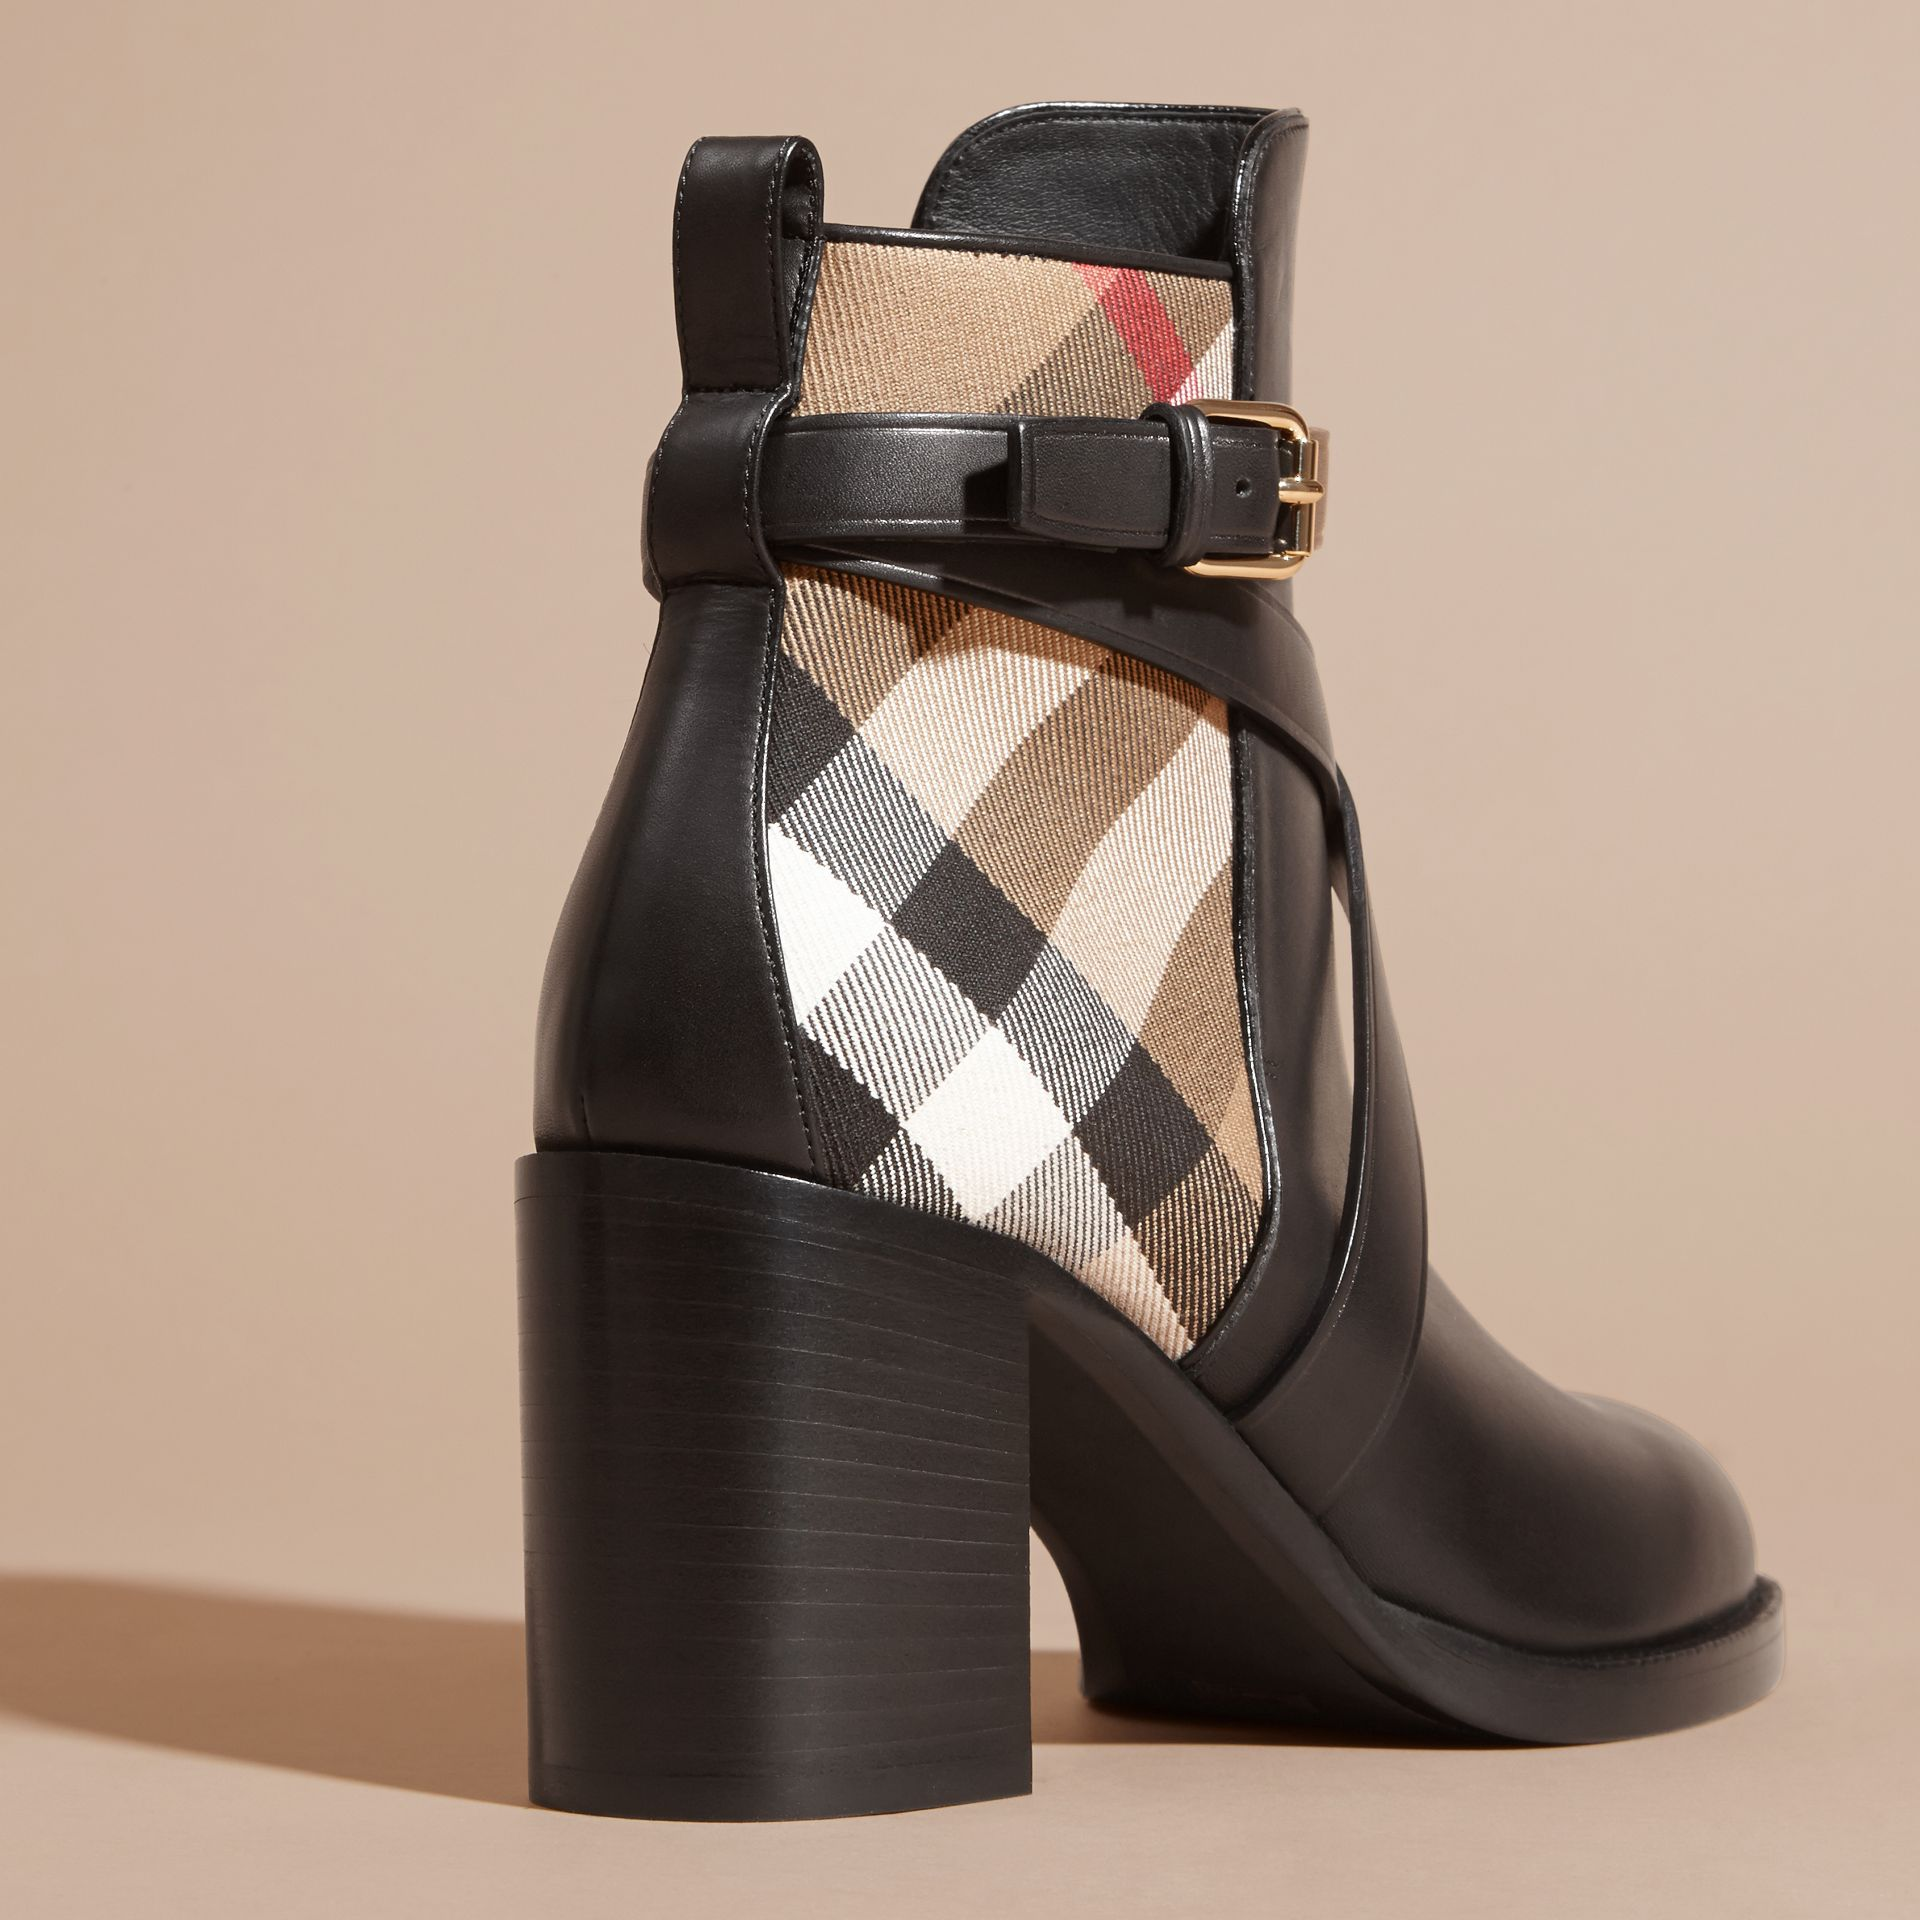 House Check and Leather Ankle Boots in Black - Women | Burberry Canada - gallery image 3